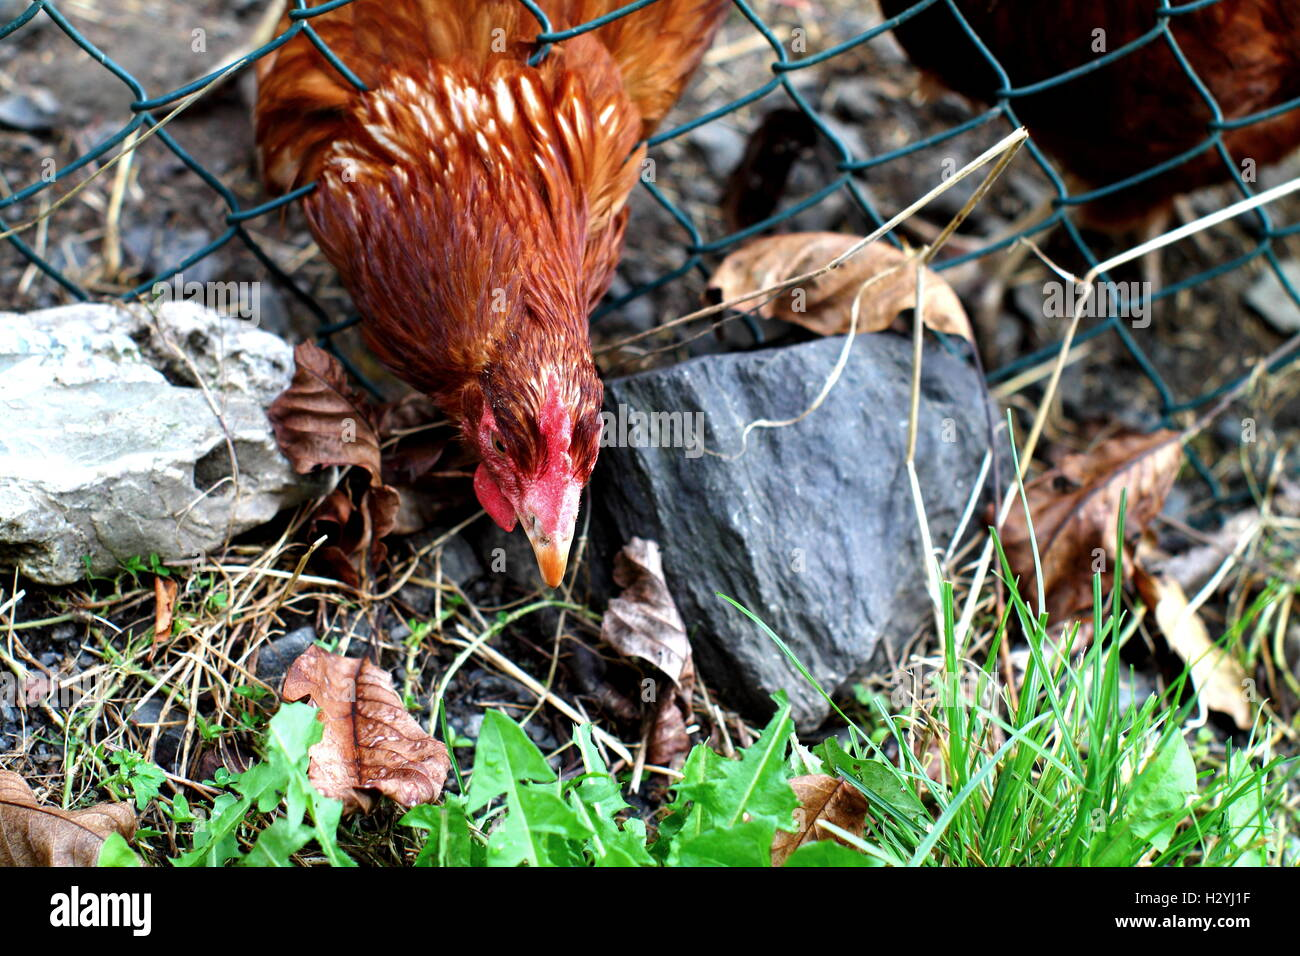 Red chicken breaking out from cage. - Stock Image